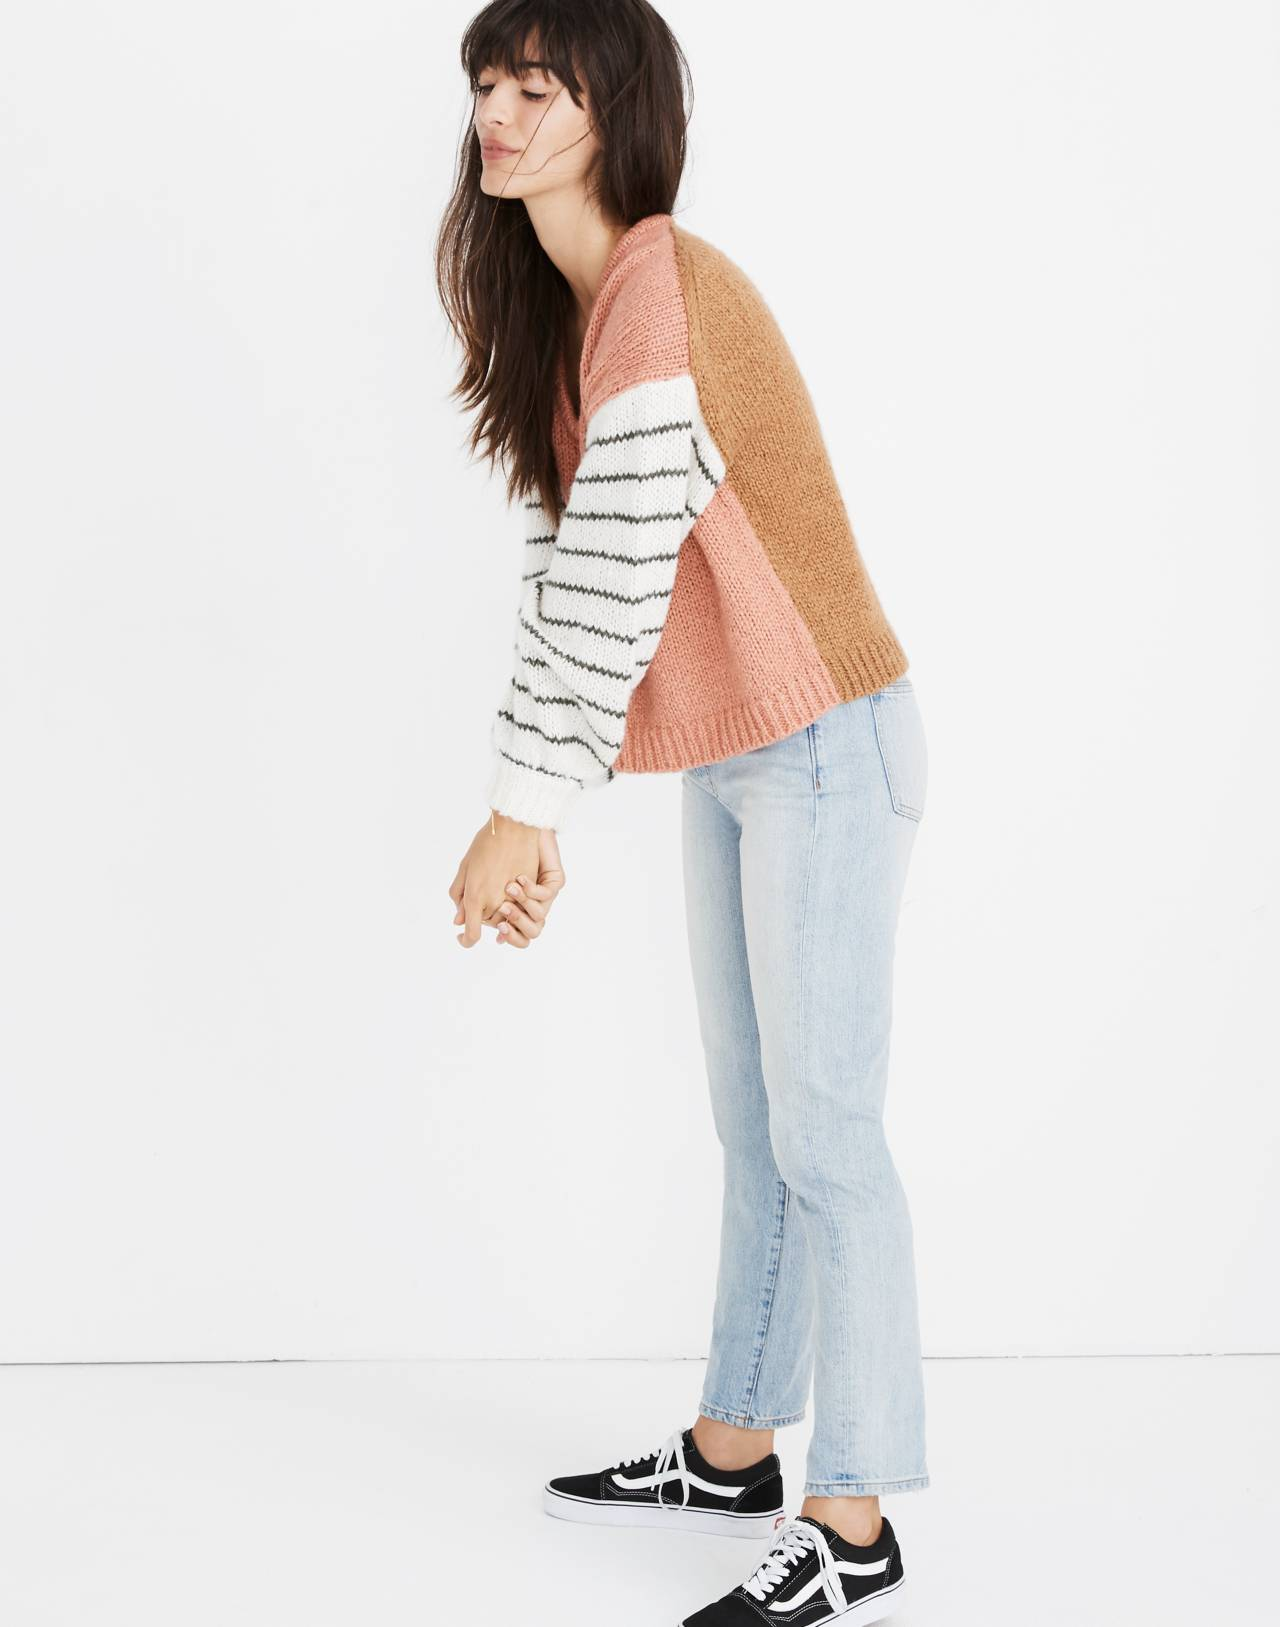 Balloon-Sleeve Pullover Sweater in Colorblock in faded coral image 2